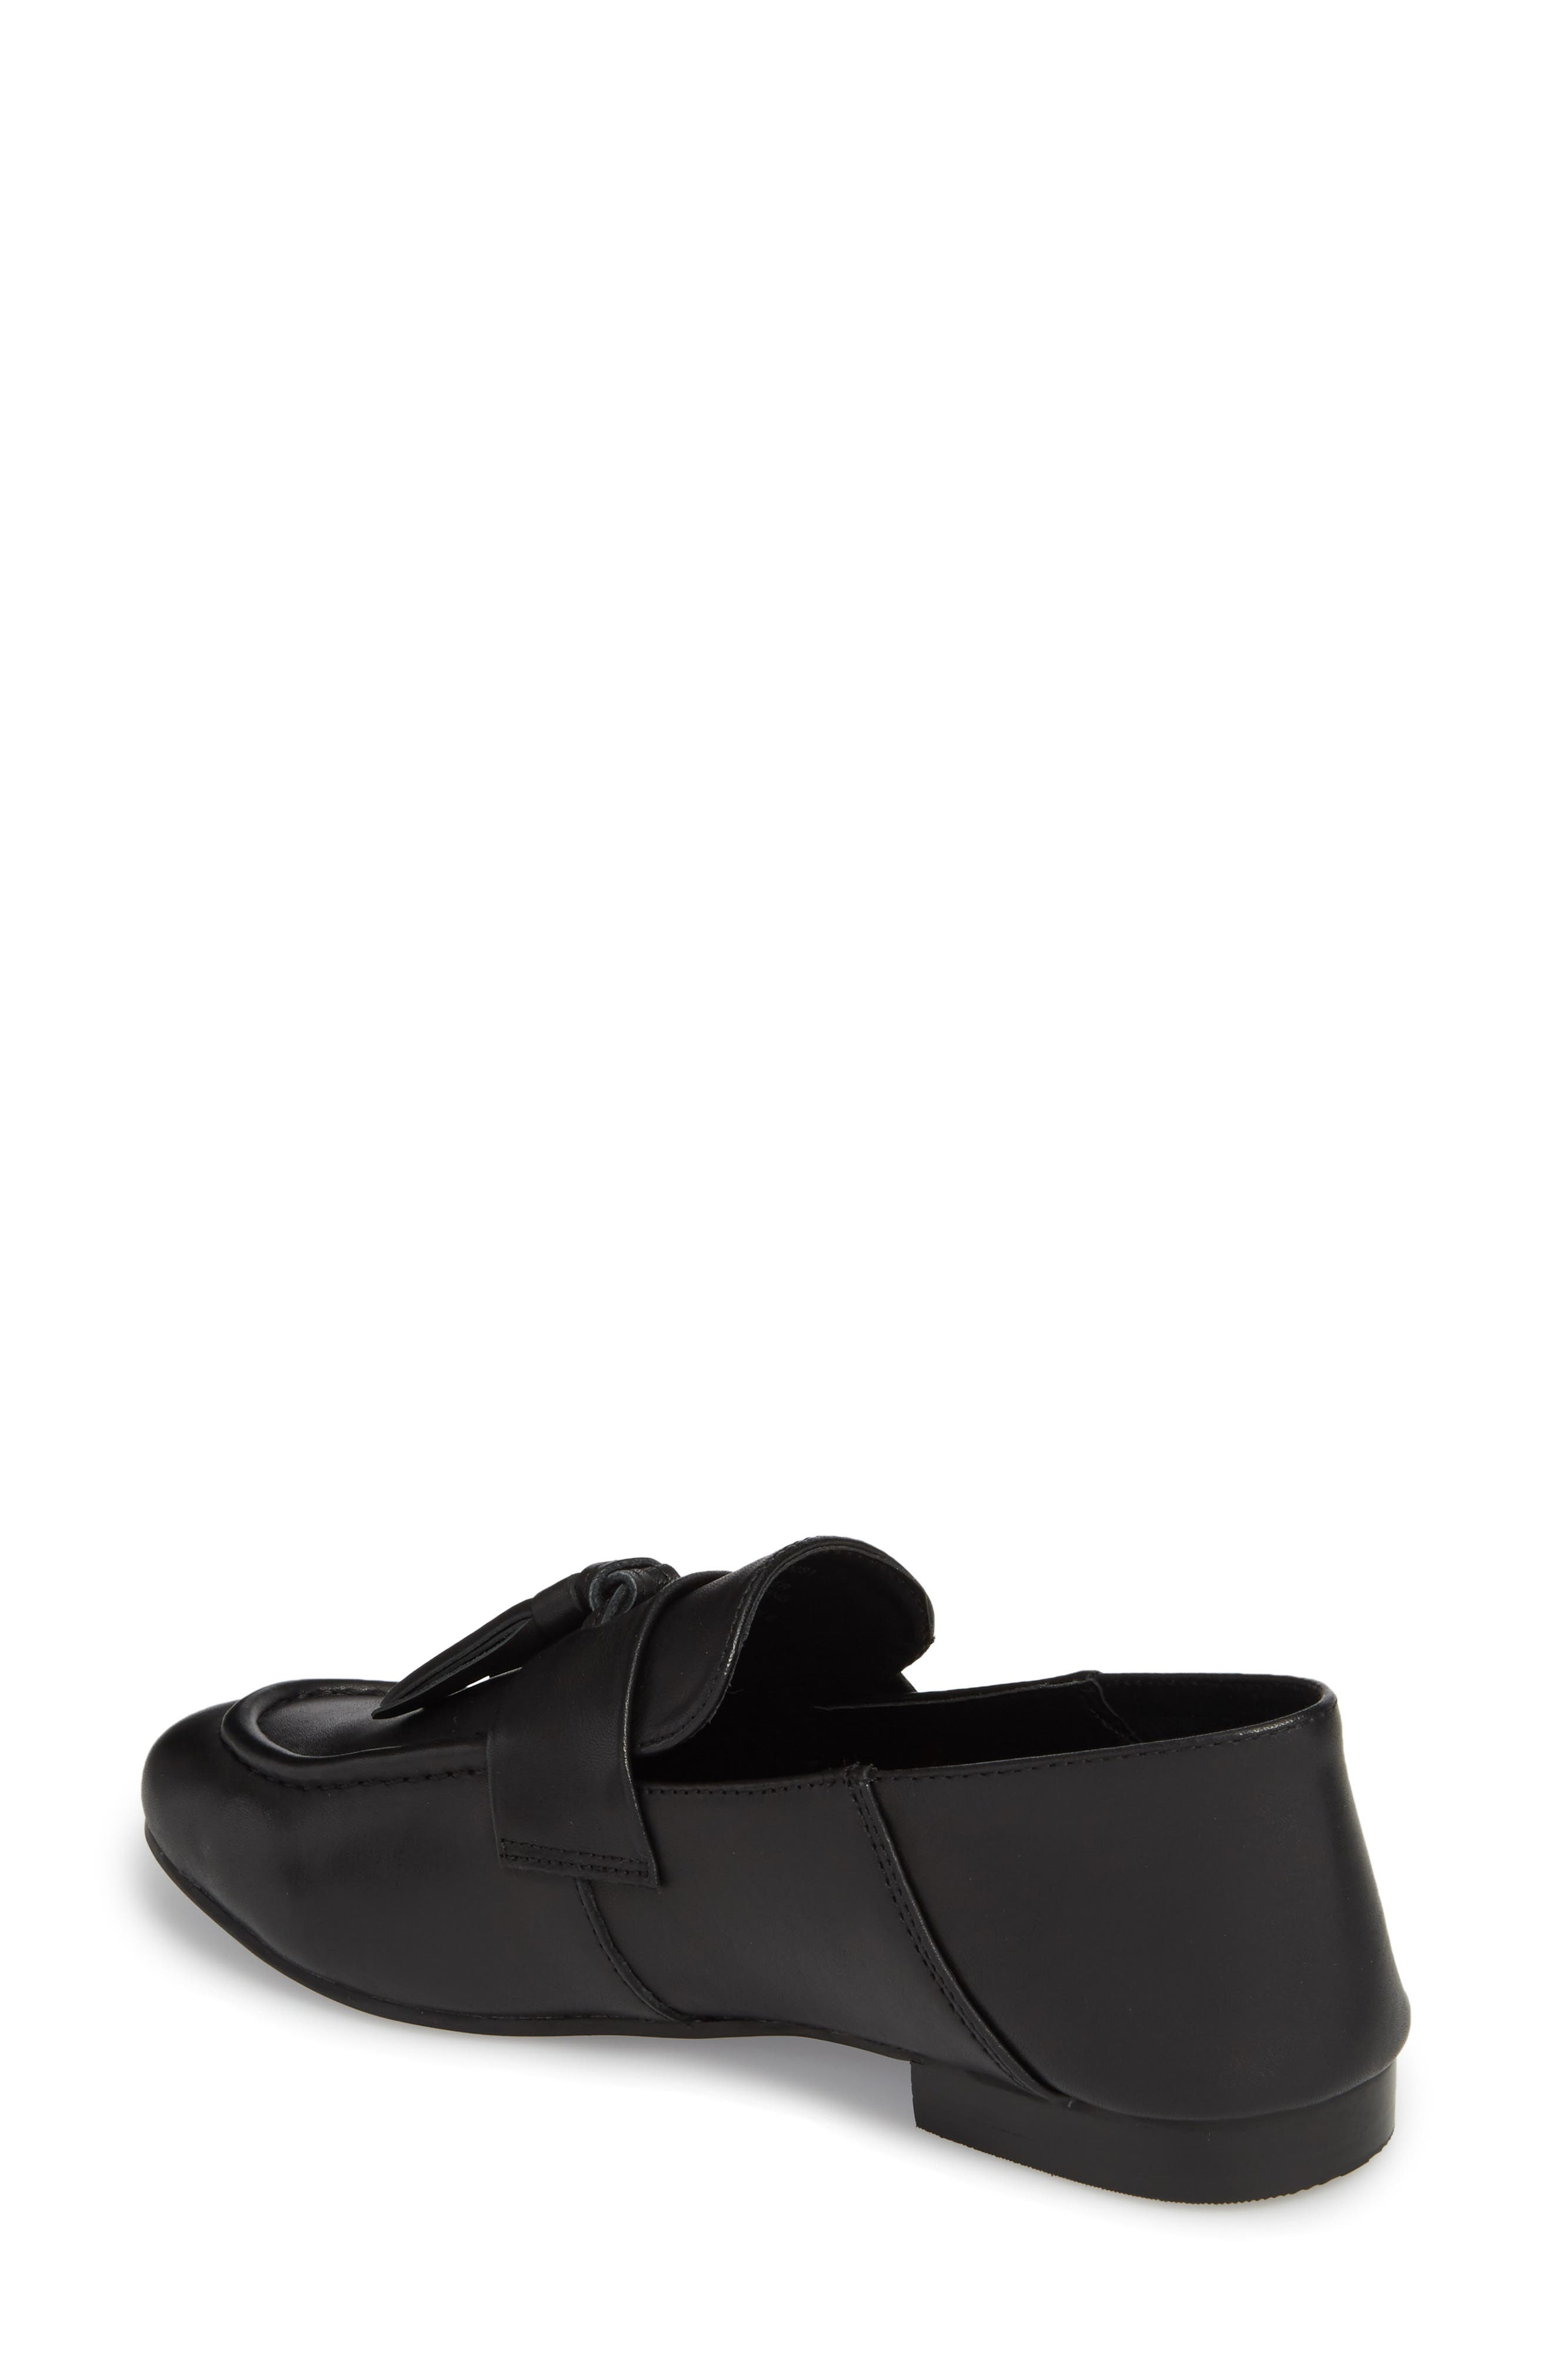 Beck Convertible Tasseled Loafer,                             Alternate thumbnail 2, color,                             Black Leather